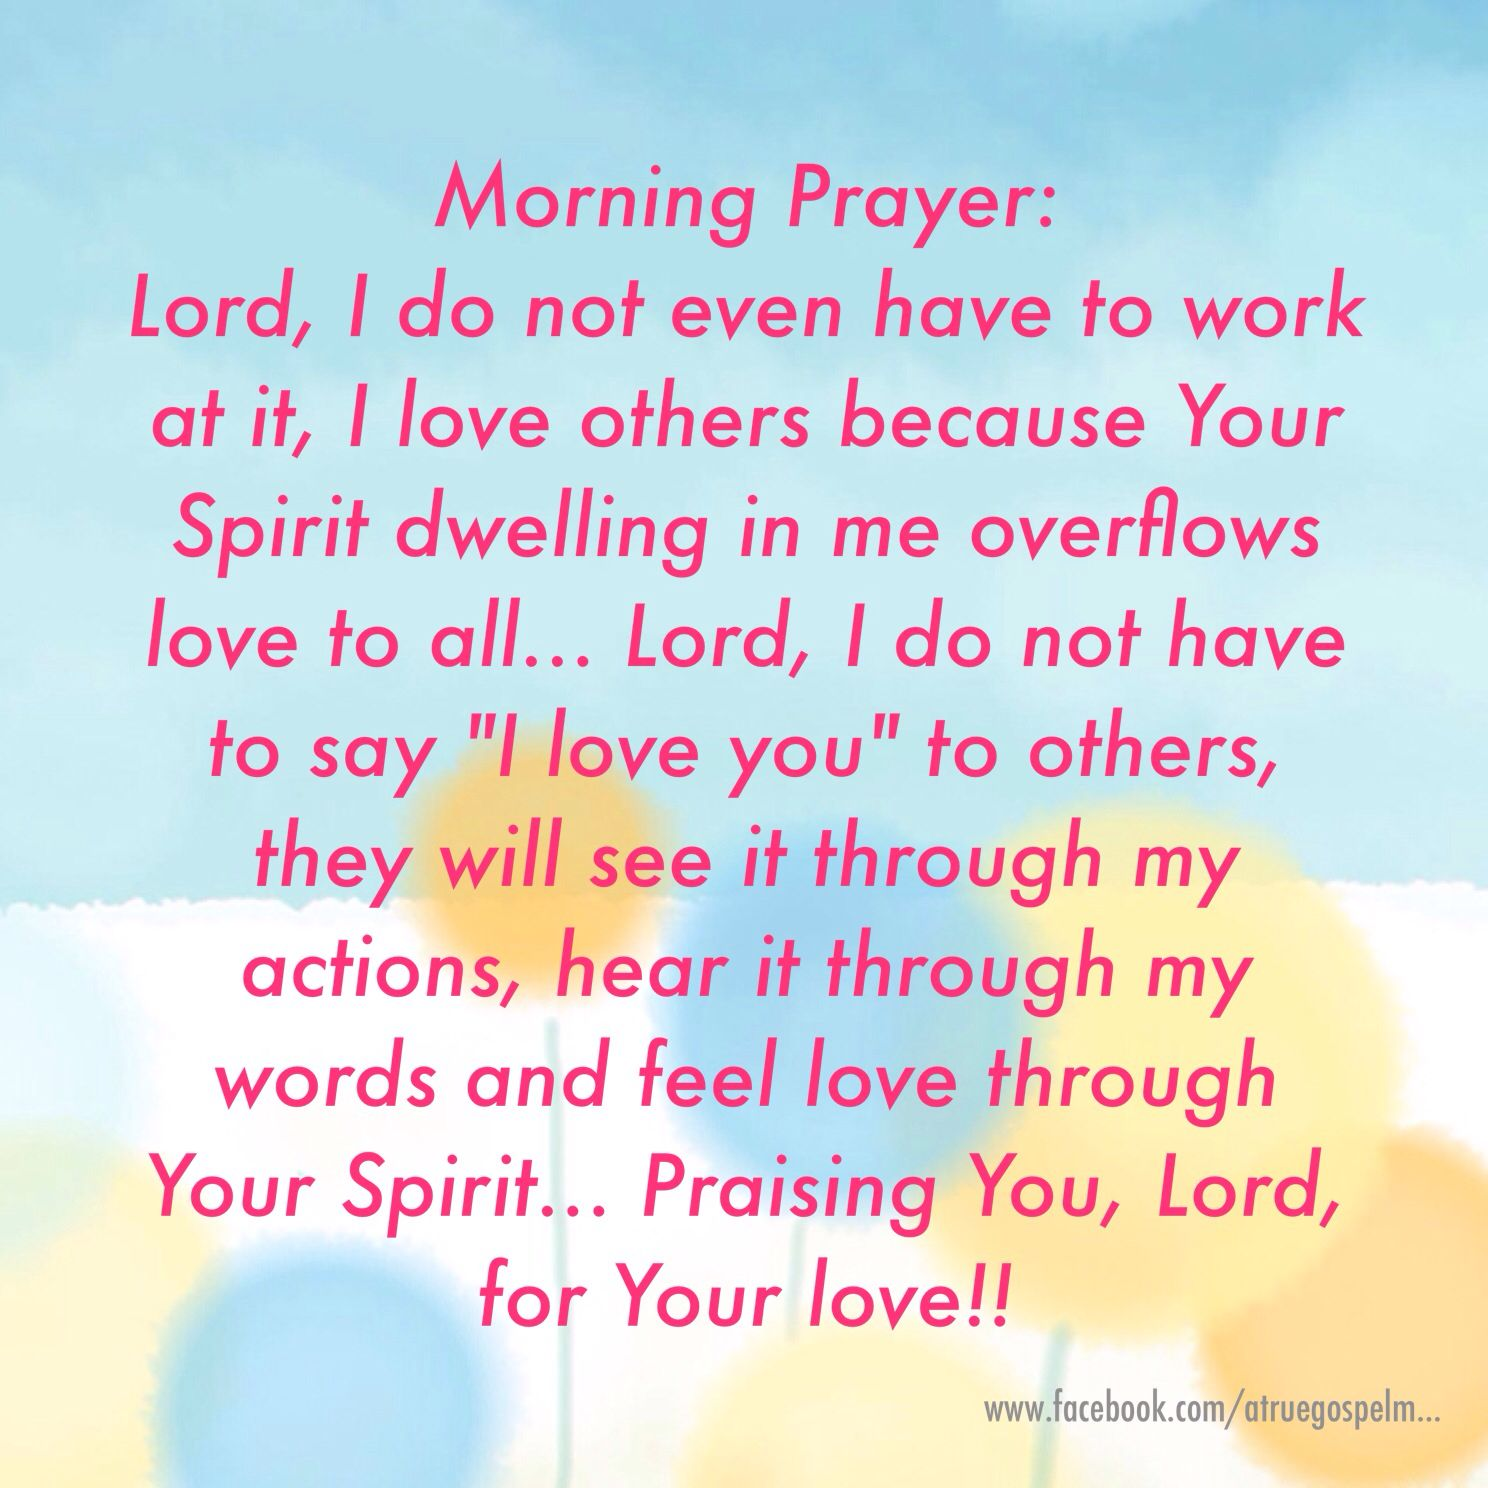 Good Morning Prayer To Your Lover : Morning prayer lord let my actions speak quot i love you